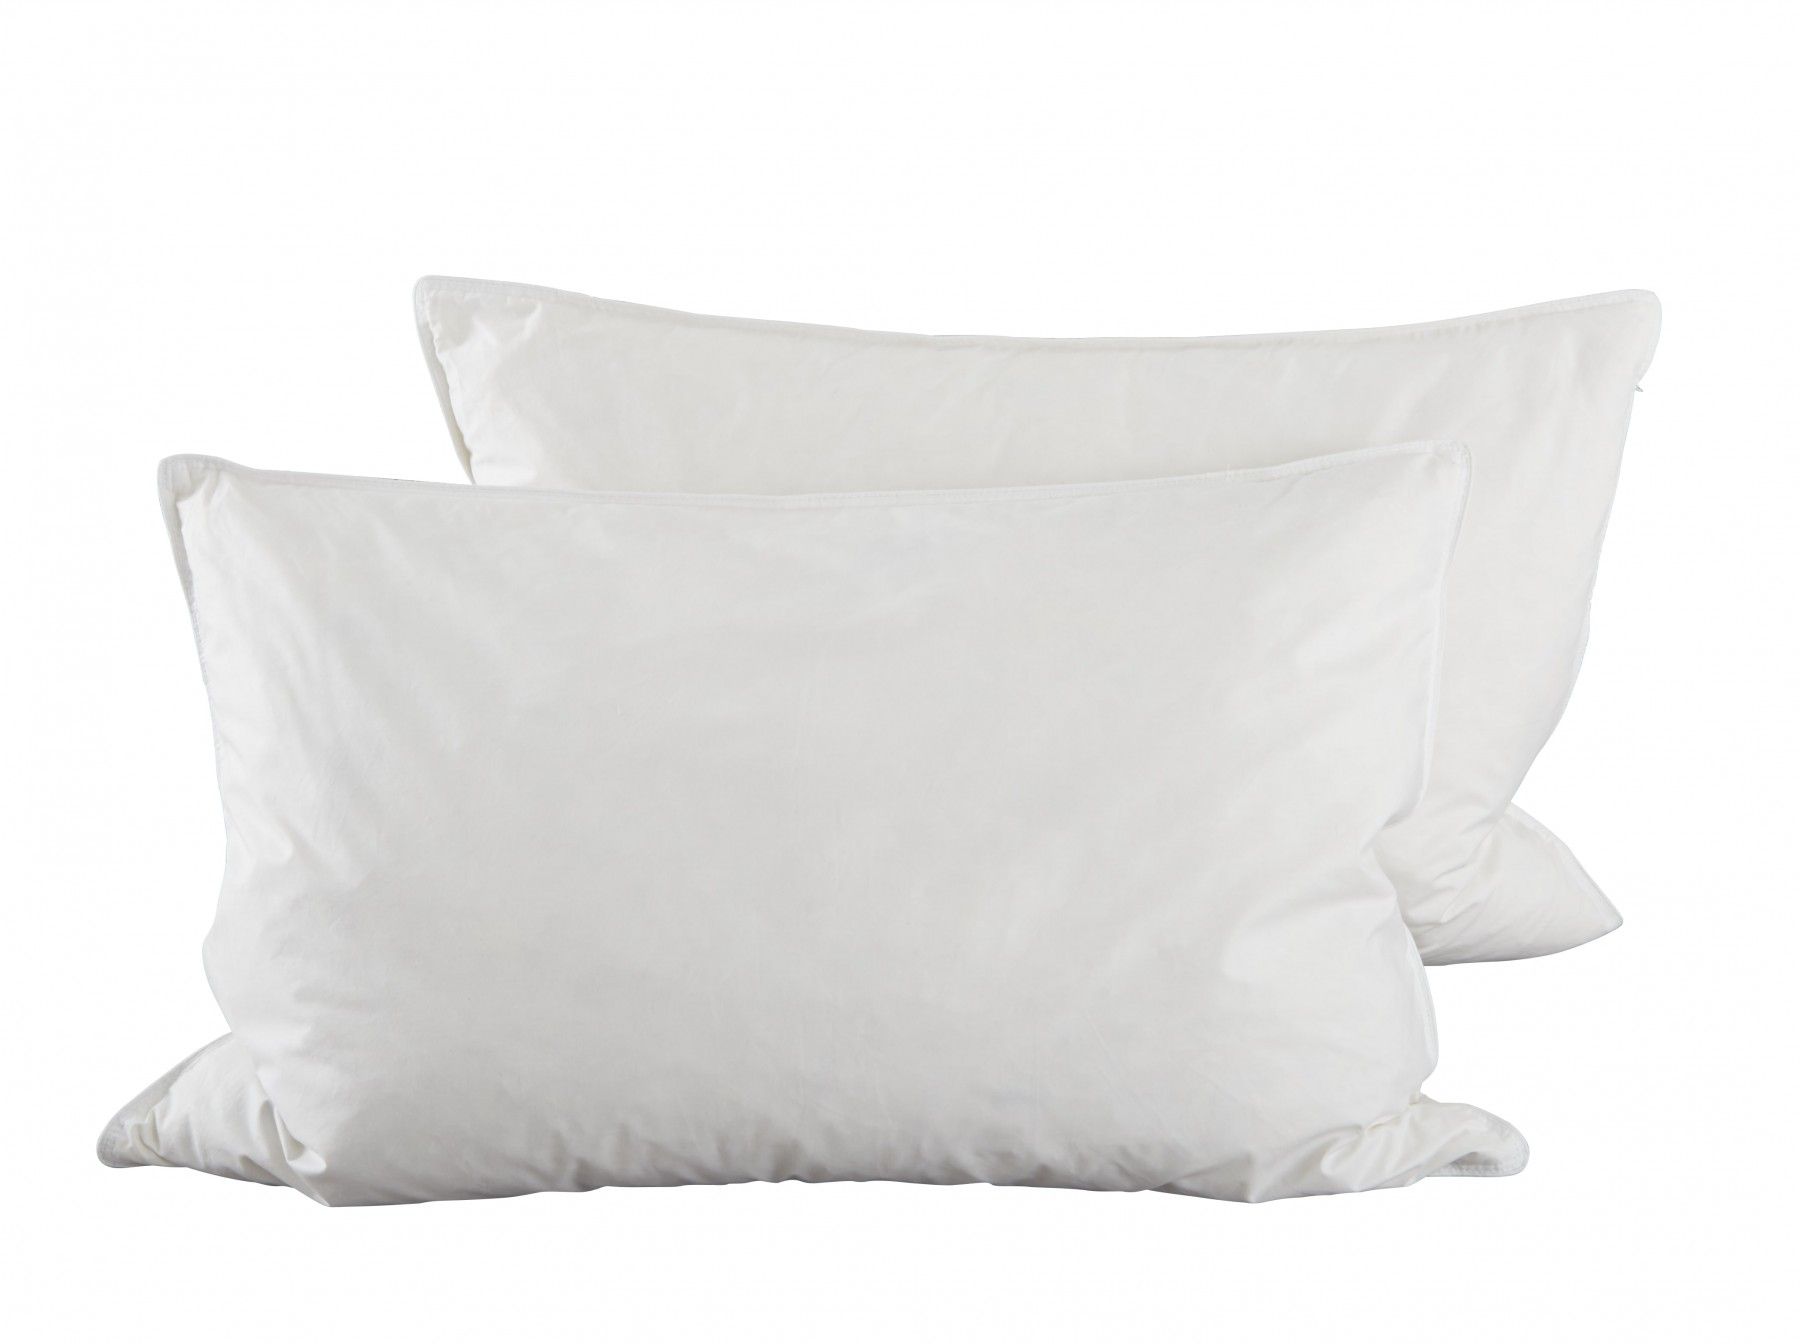 Duck feather down pillow pair indulgence range for Duck or goose feather pillows which is better